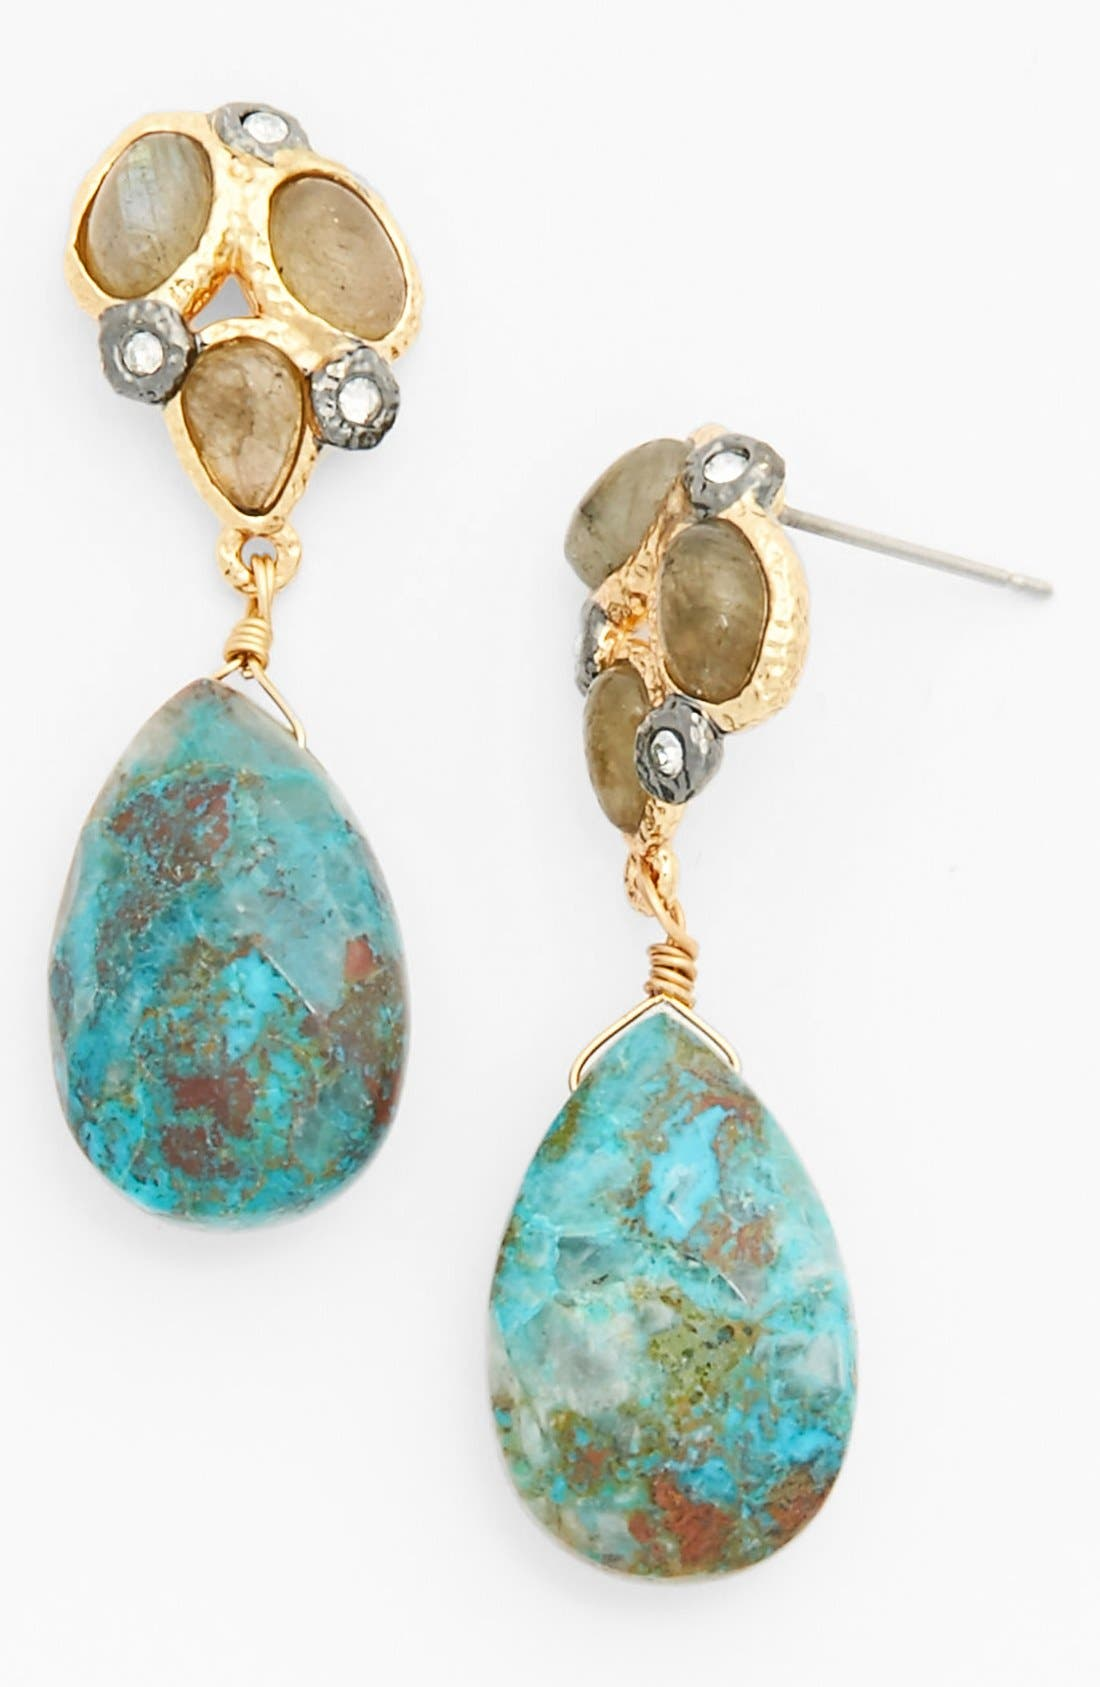 Main Image - Alexis Bittar 'Elements' Drop Earrings